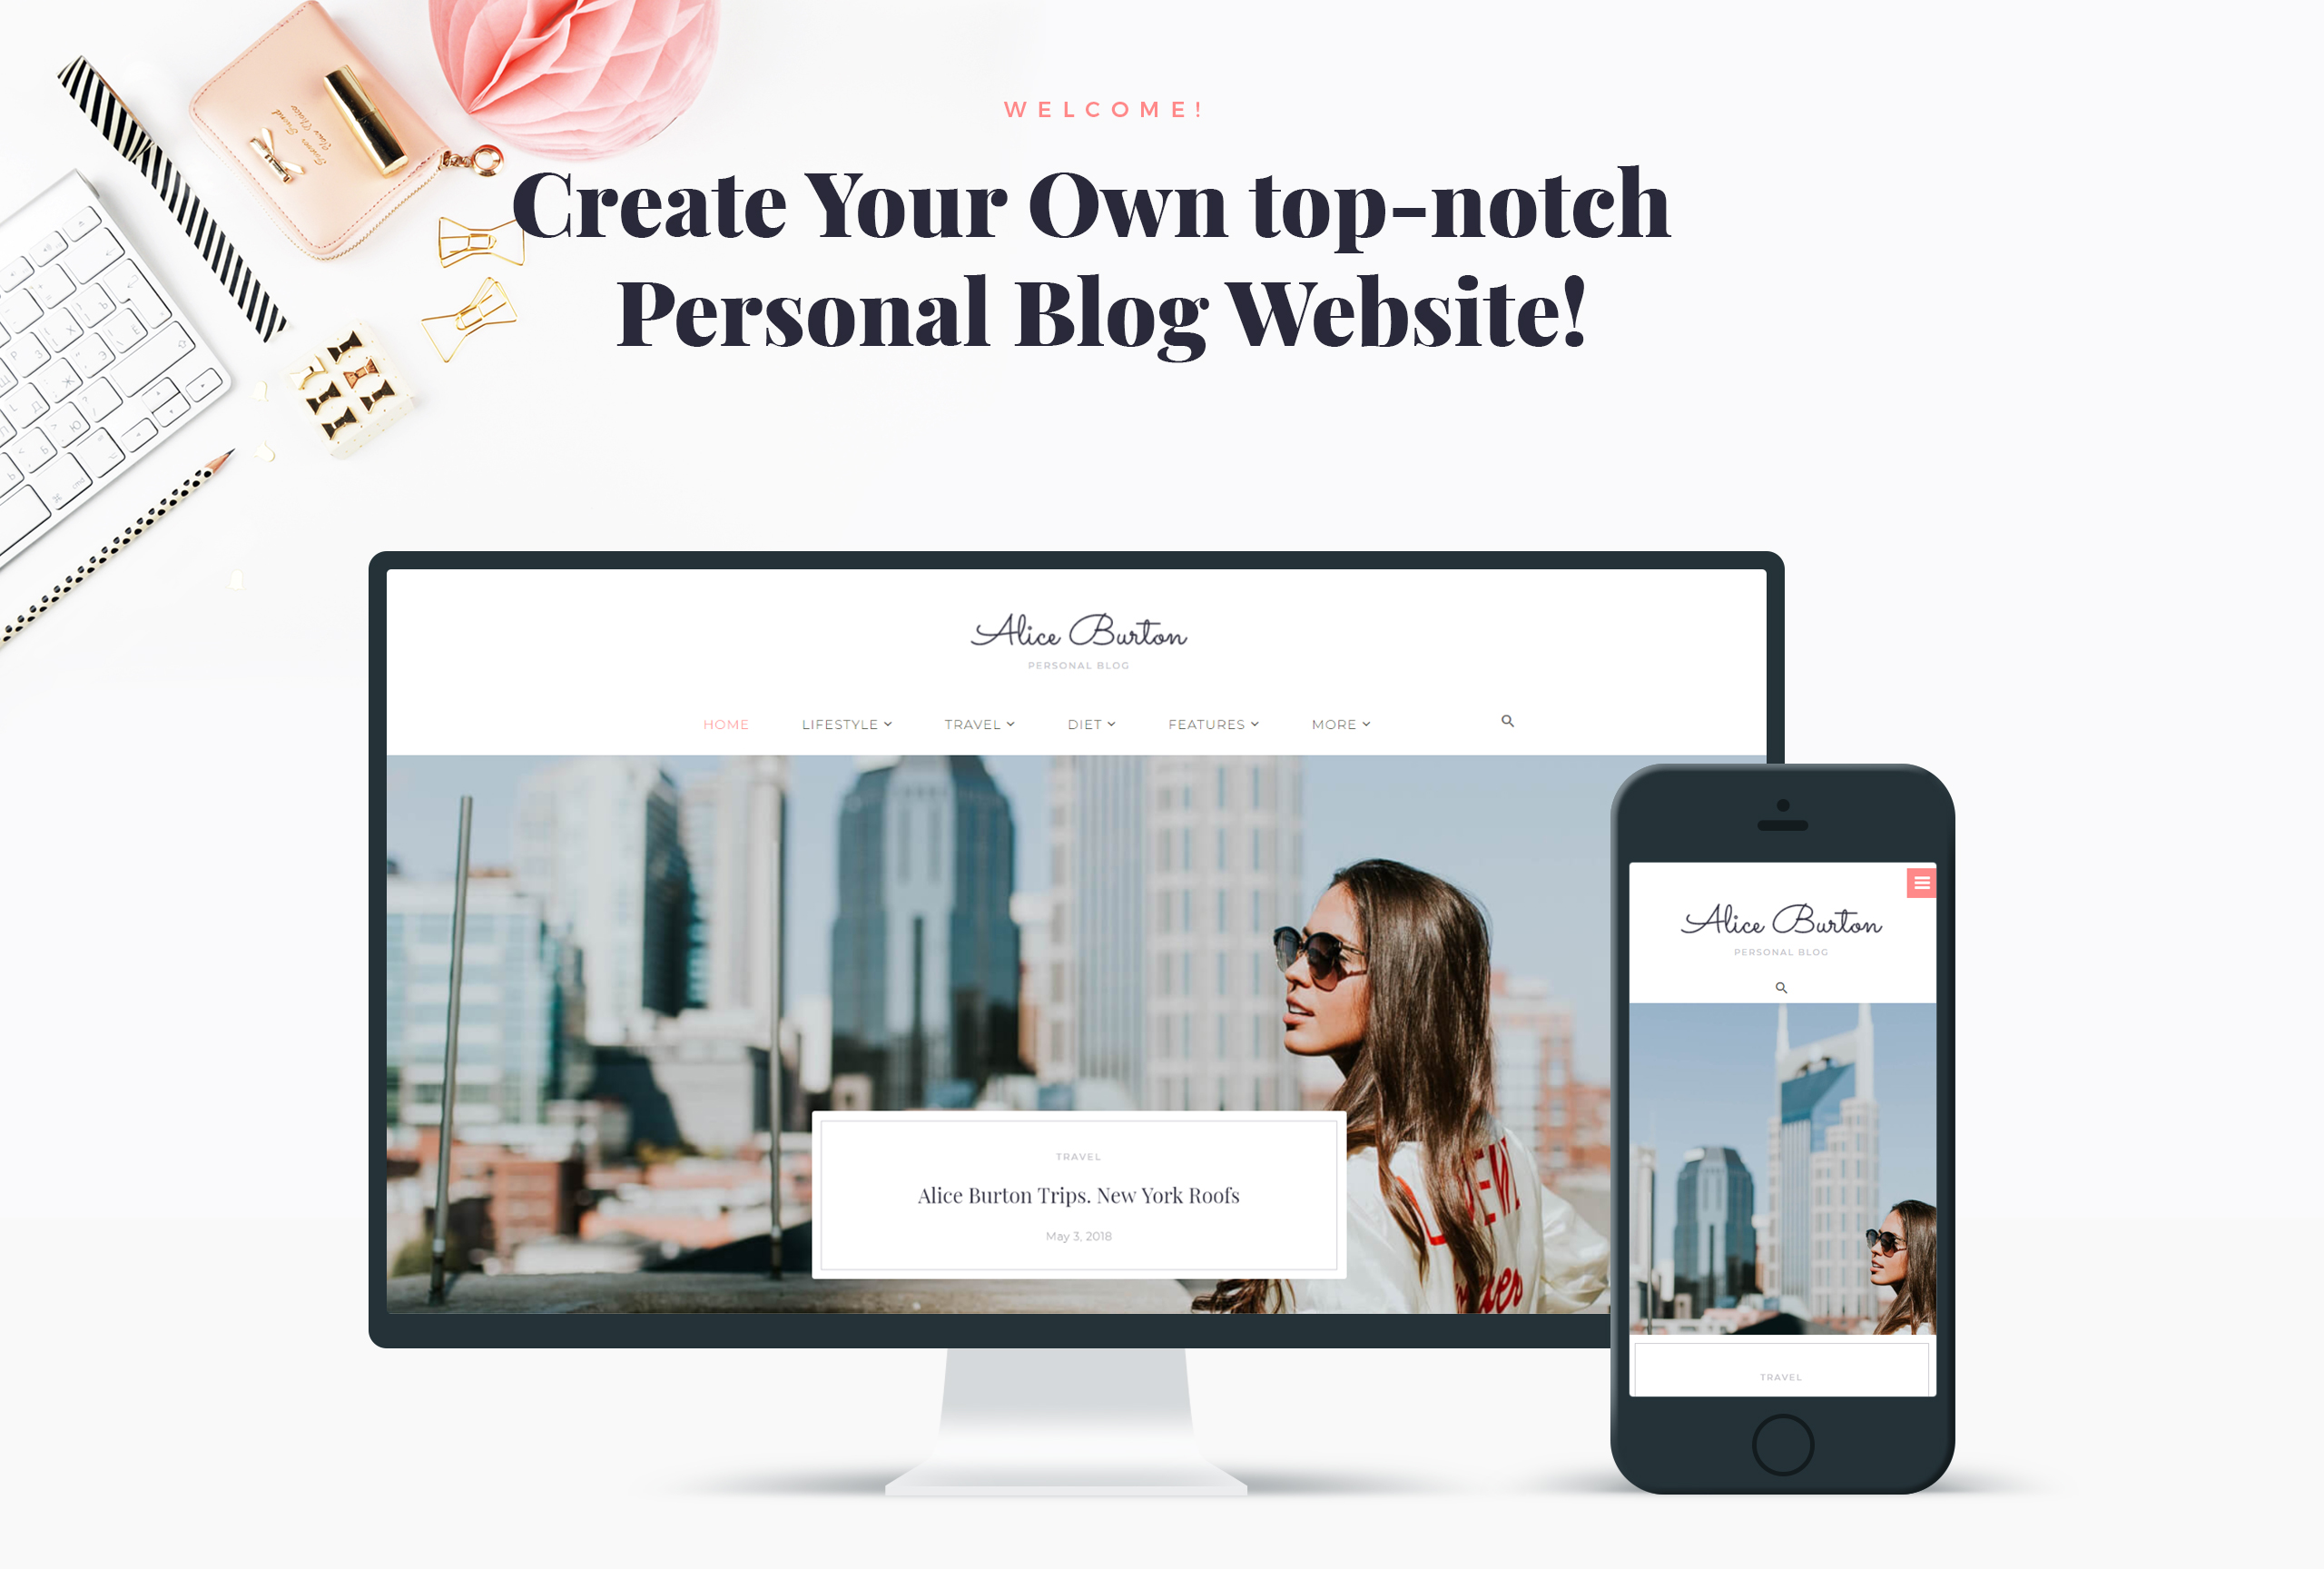 Website Design Template 70648 - travelling fashion style entertainment photo media online blogger lifestyle responsive gallery comments social seo crossbrowser html premium